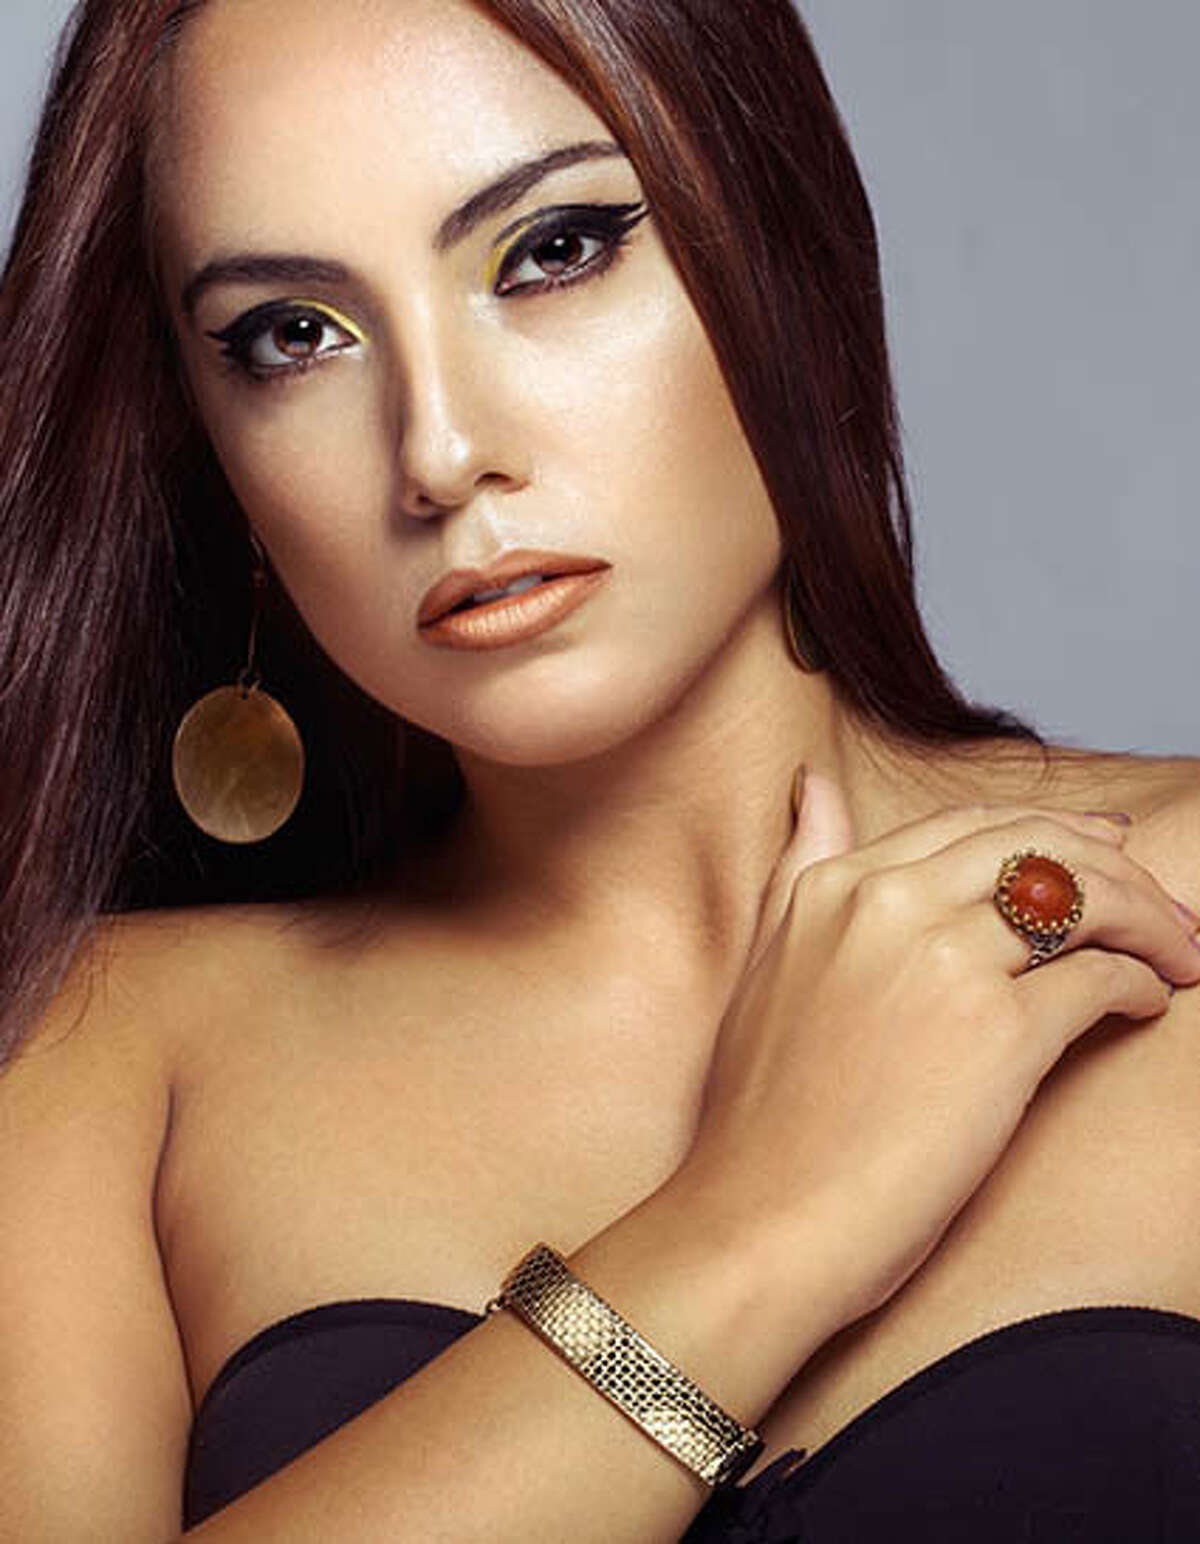 Country:Bulgaria Name:Violina Ancheva Age:21 Hobbies:Working to become the first female president of Bulgaria